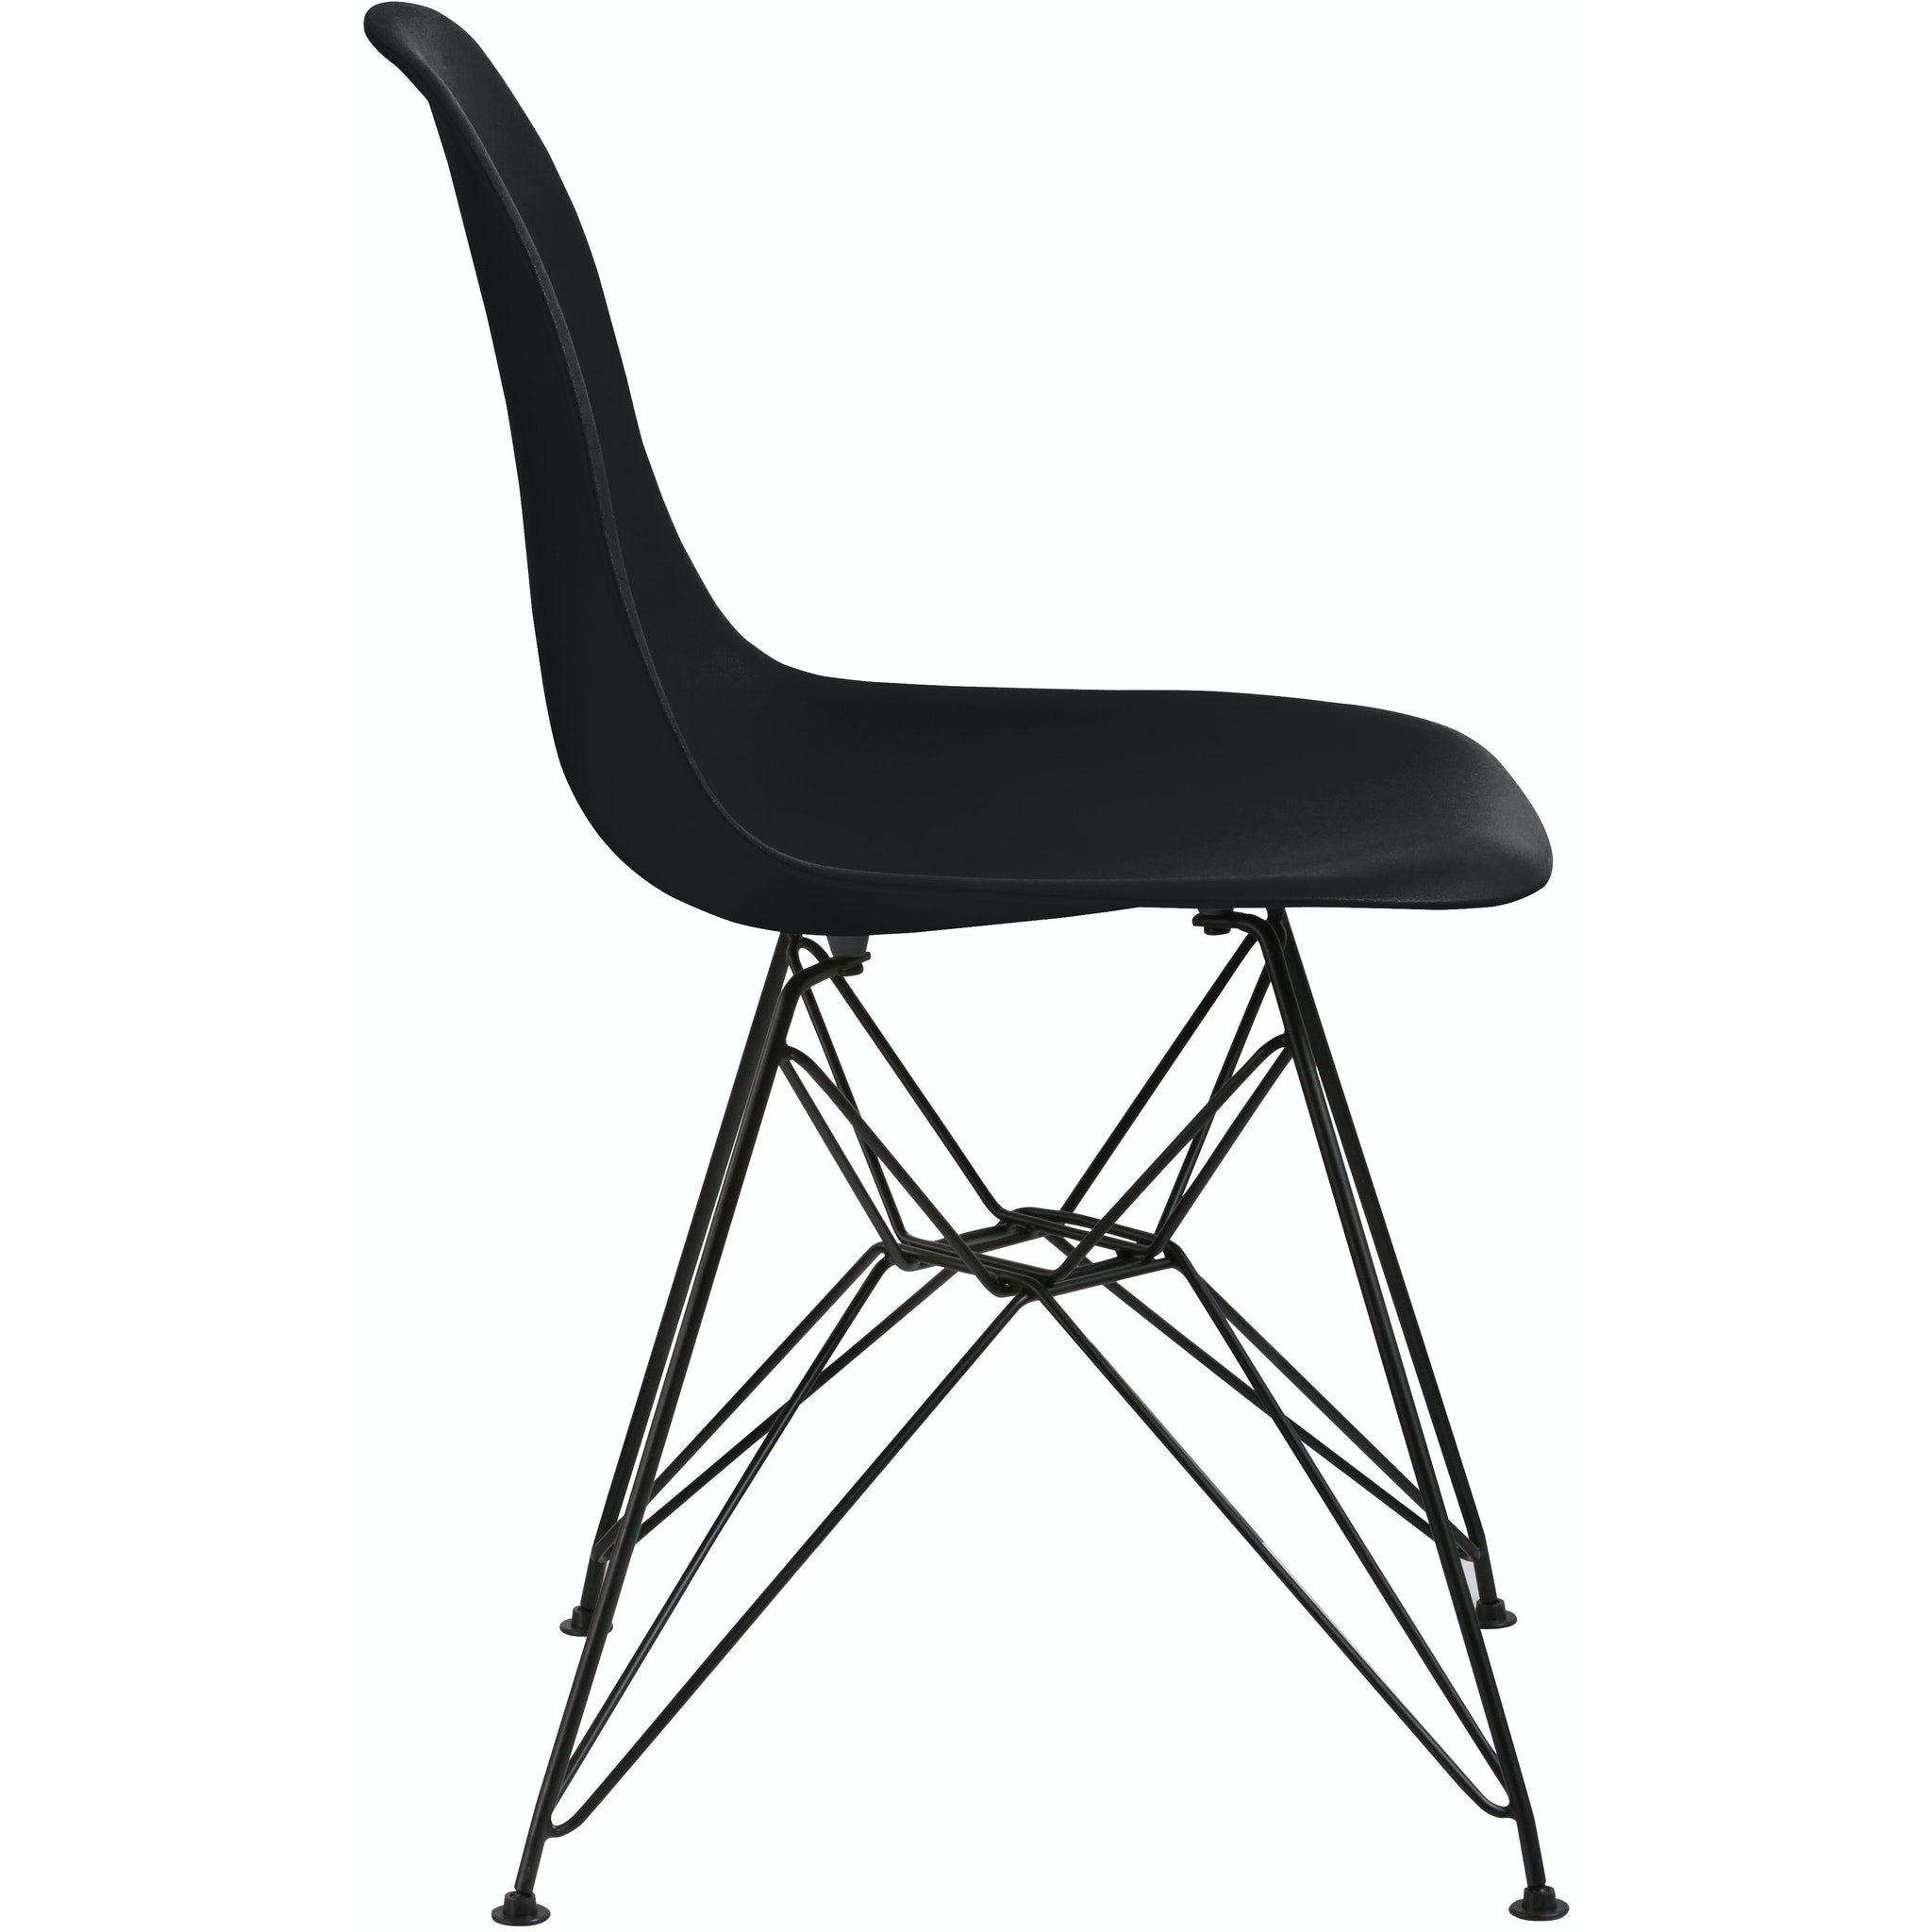 Rostock Molded Plastic Wire Base Dining Chair in Black